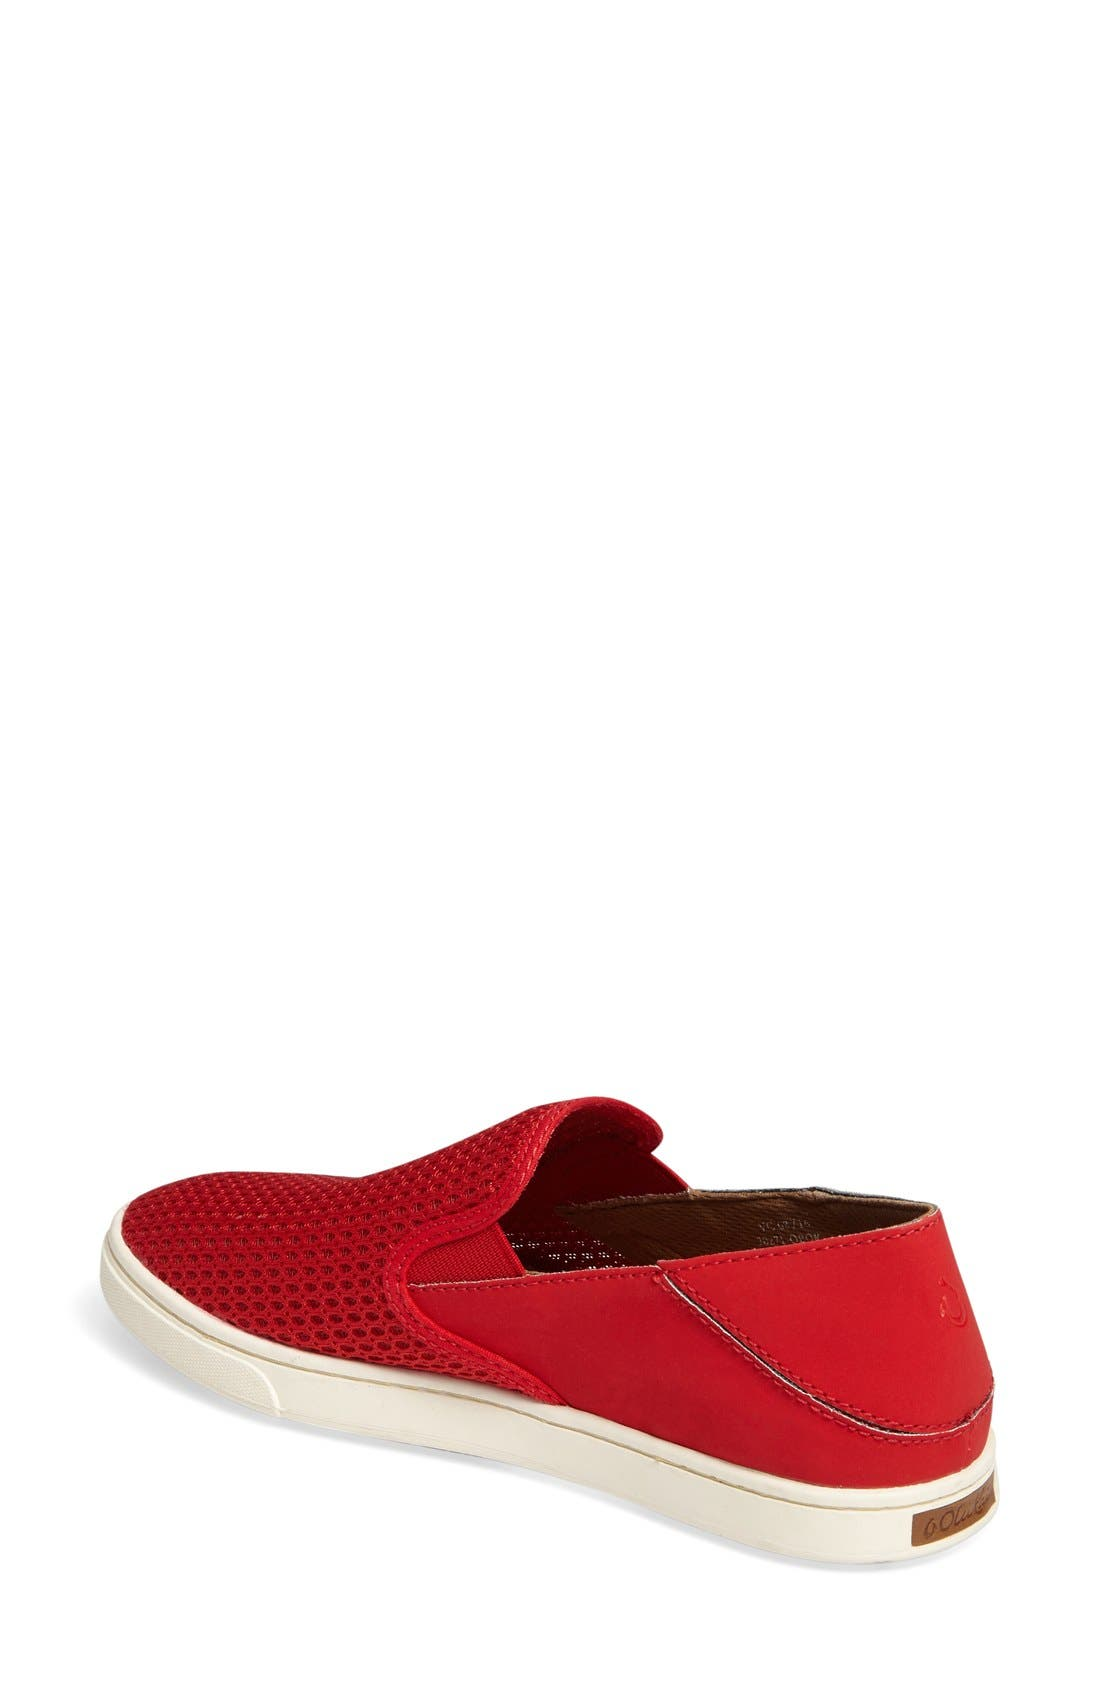 Alternate Image 2  - OluKai 'Pehuea' Slip-On Sneaker (Women)